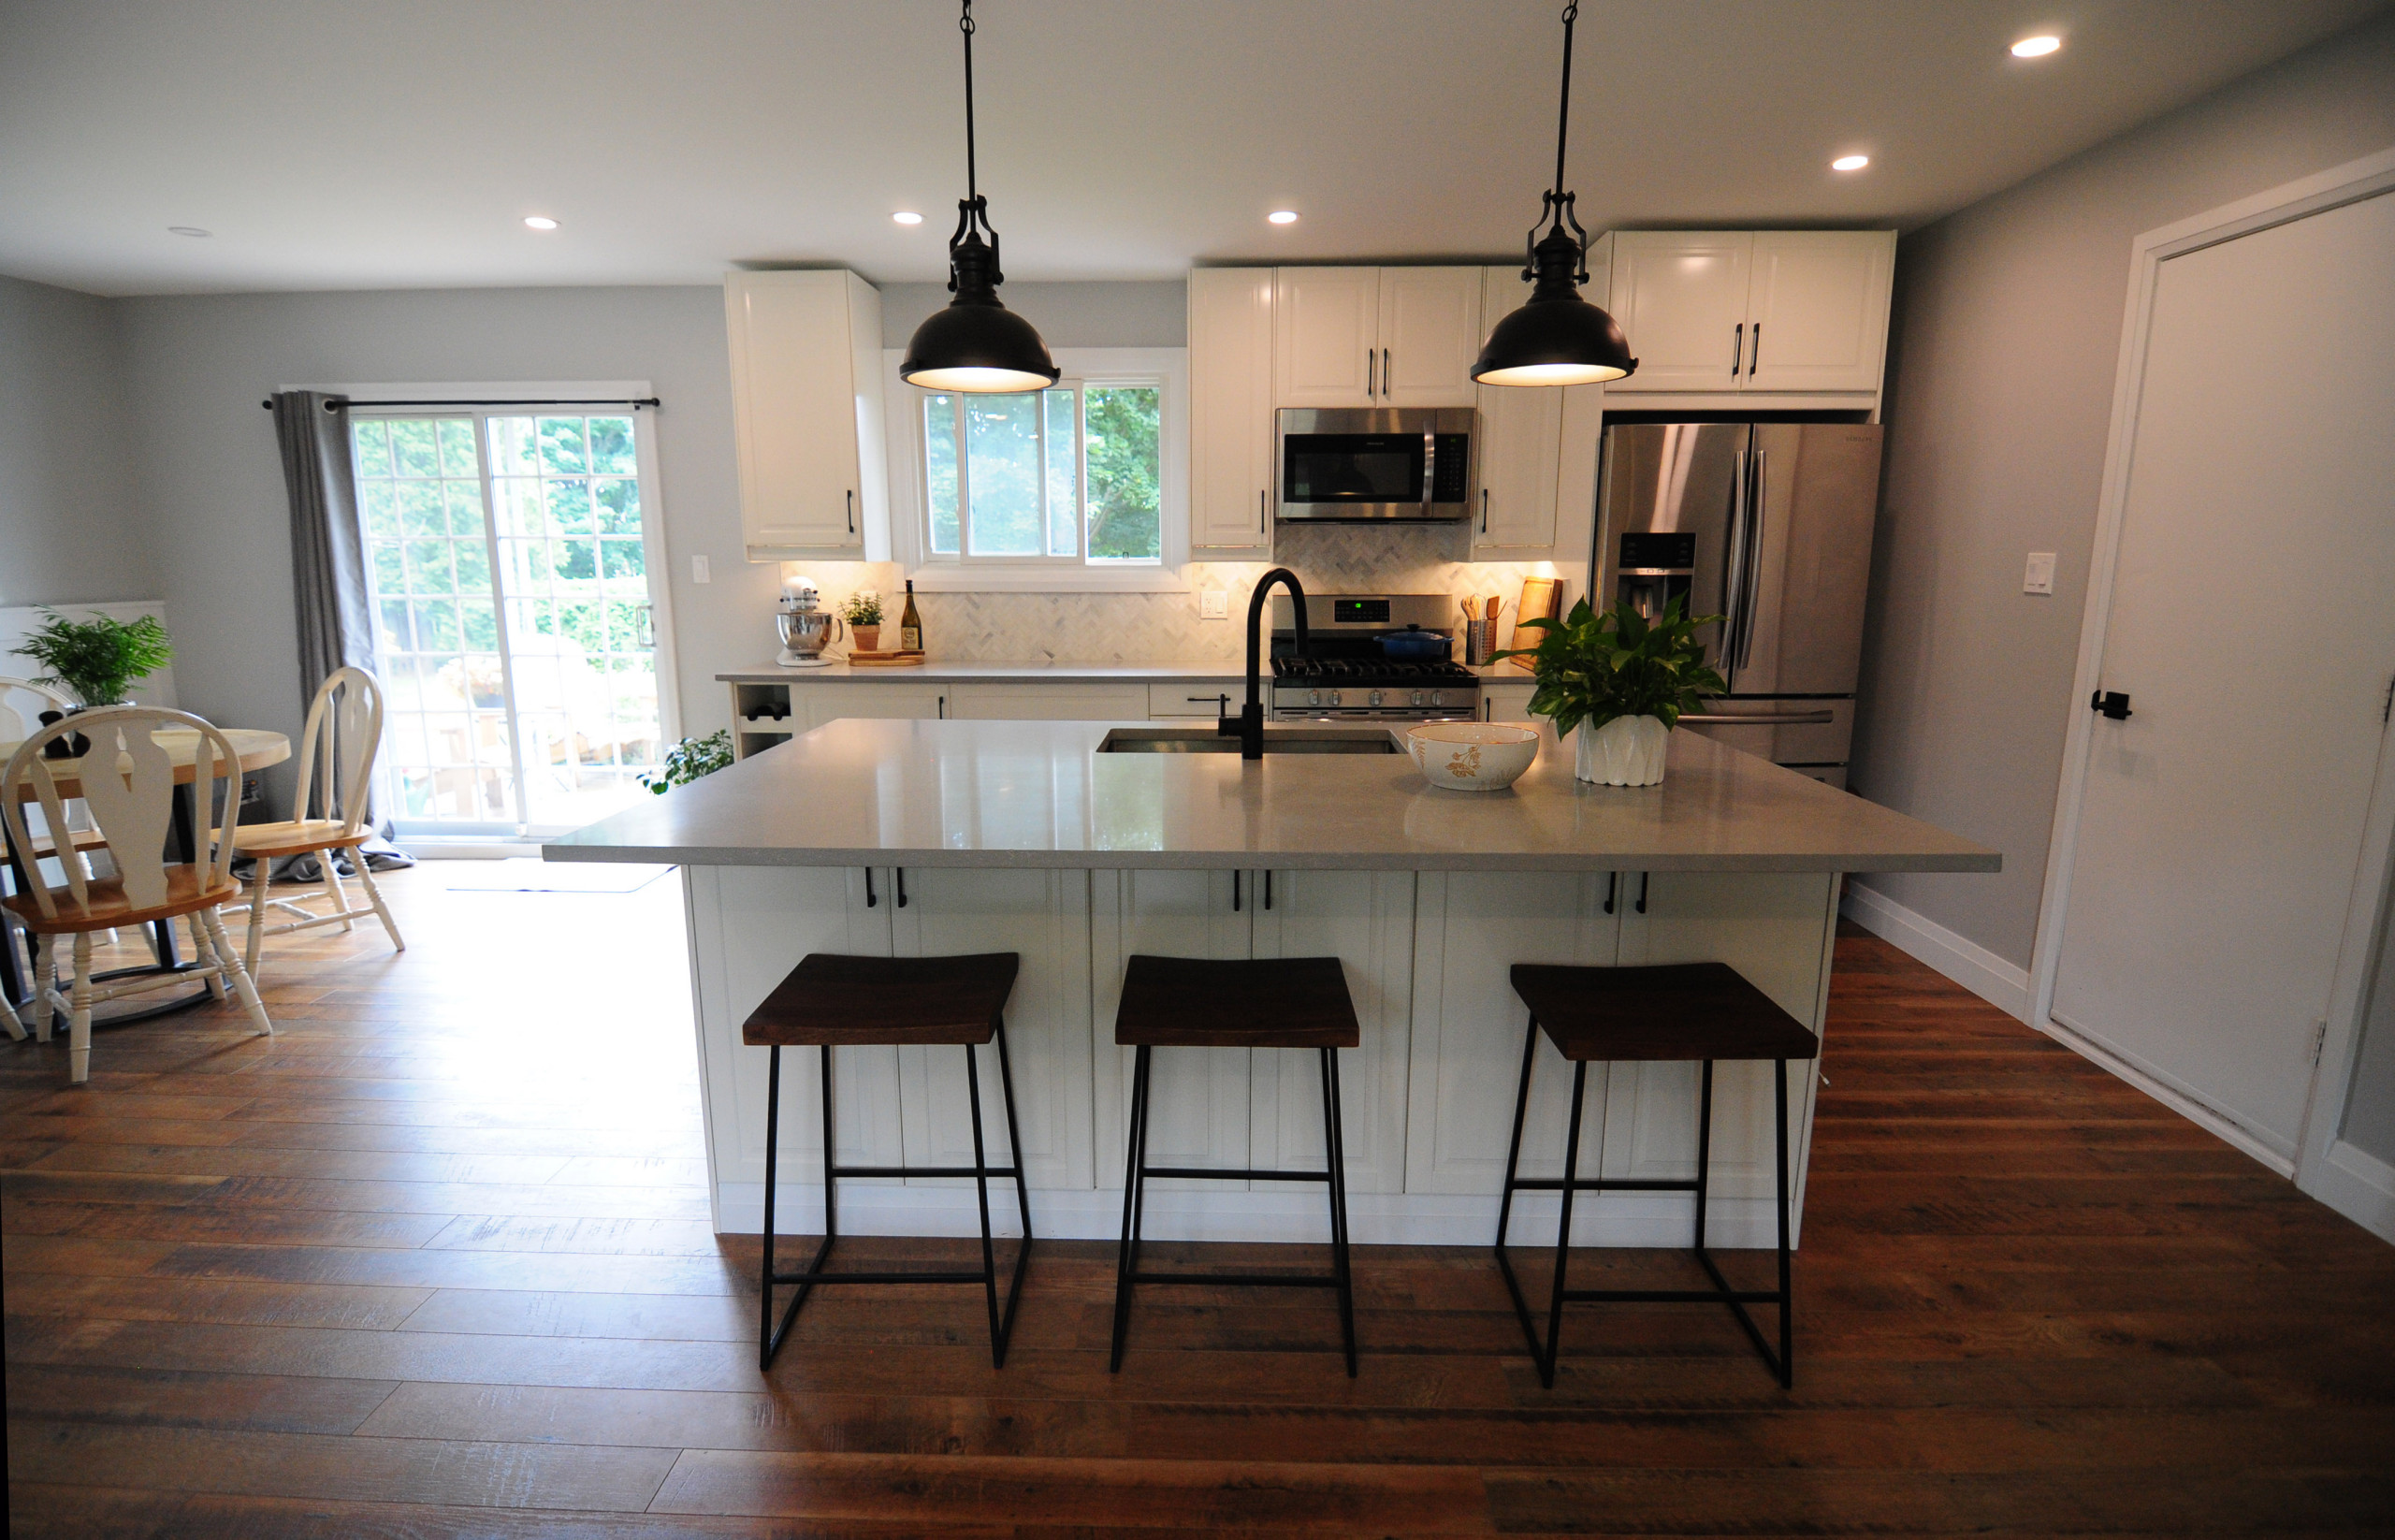 Innisfil ON - Entire Home Reno